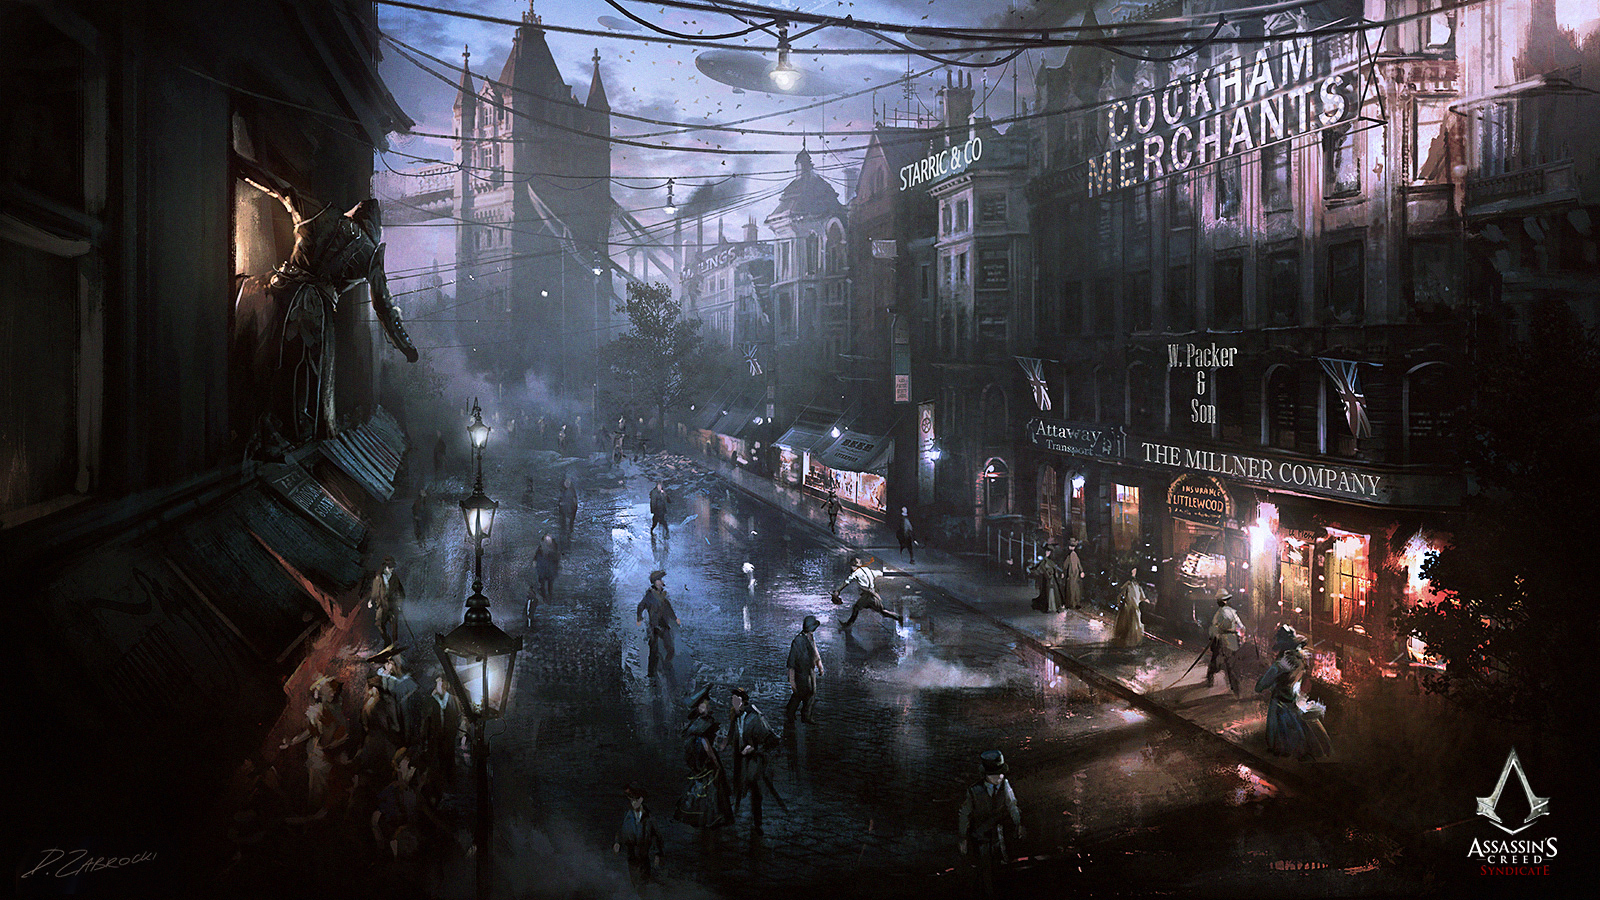 Assassin S Creed Syndicate Street View By Daroz On Deviantart